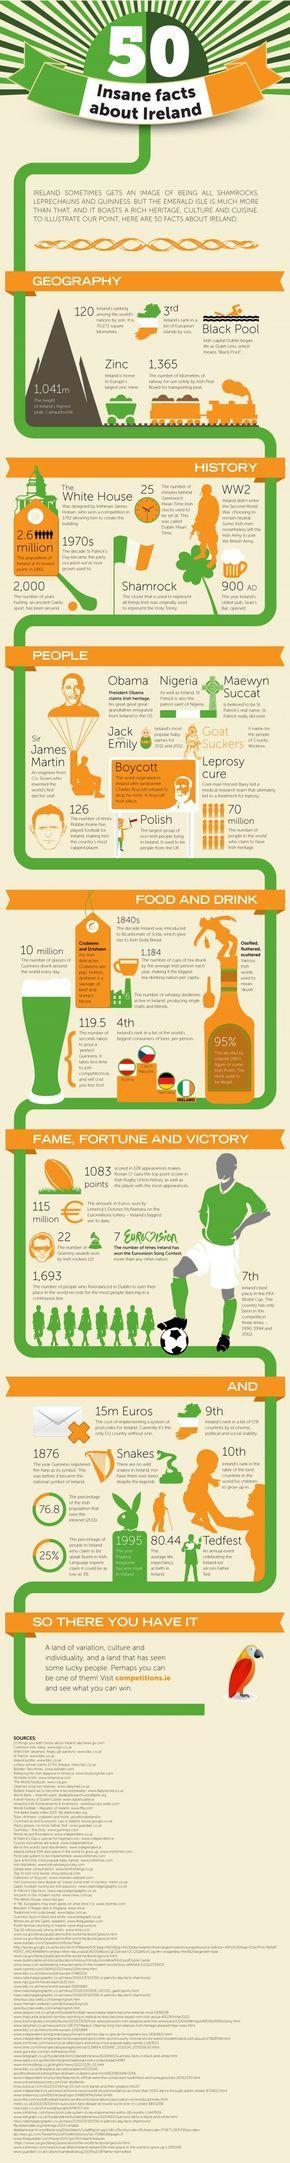 50 Insane Facts About Ireland http://www.dailyinfographic.com/50-insane-facts-about-ireland